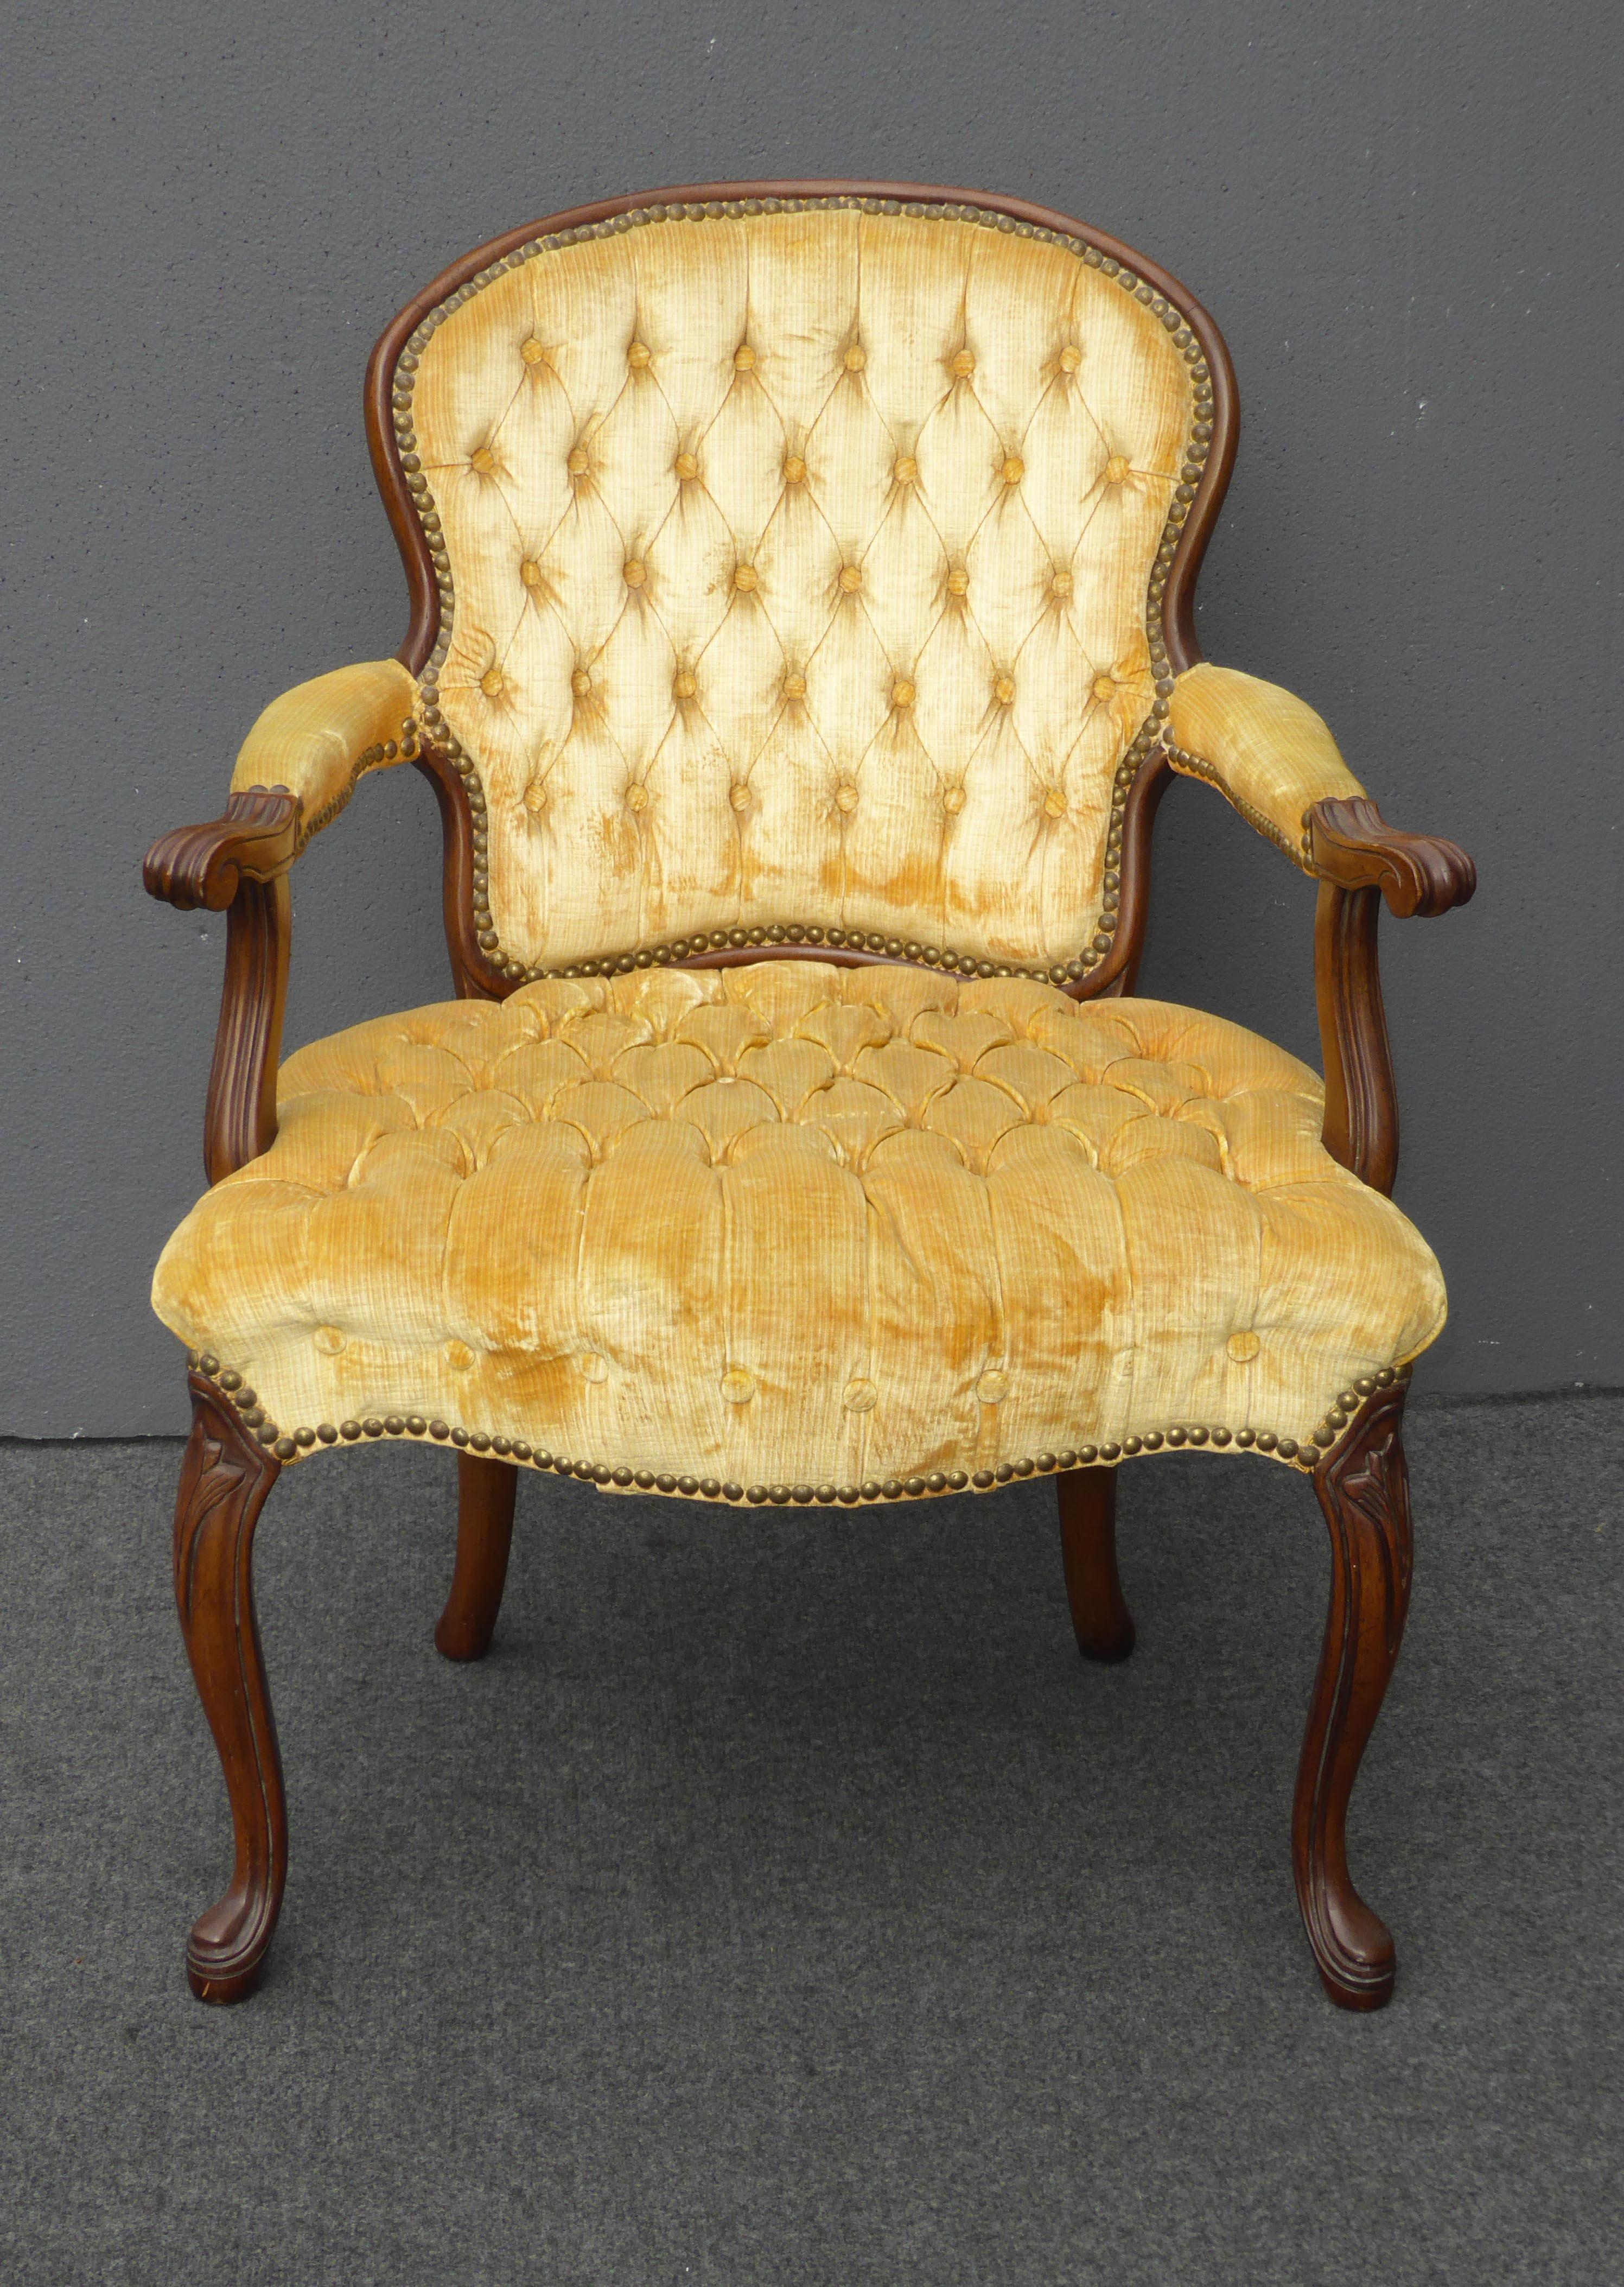 Vintage French Provincial Tufted Gold Velvet Accent Chair   Image 2 Of 11